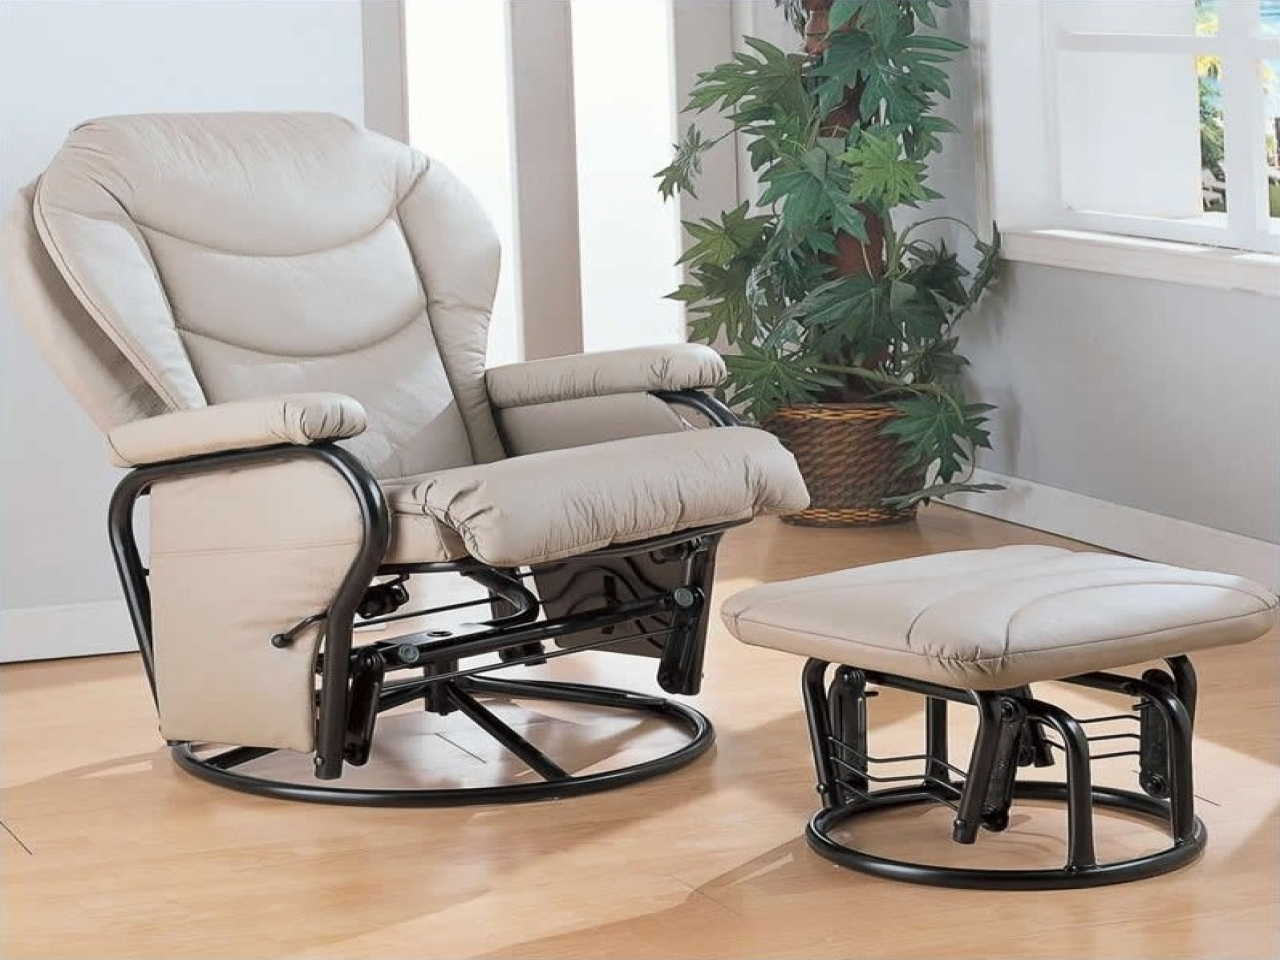 Nursery Rocker | Best Chairs Glider Recliner | Glider Recliner & Furniture u0026 Rug: Classy Glider Recliner For Home Furniture Idea ... islam-shia.org